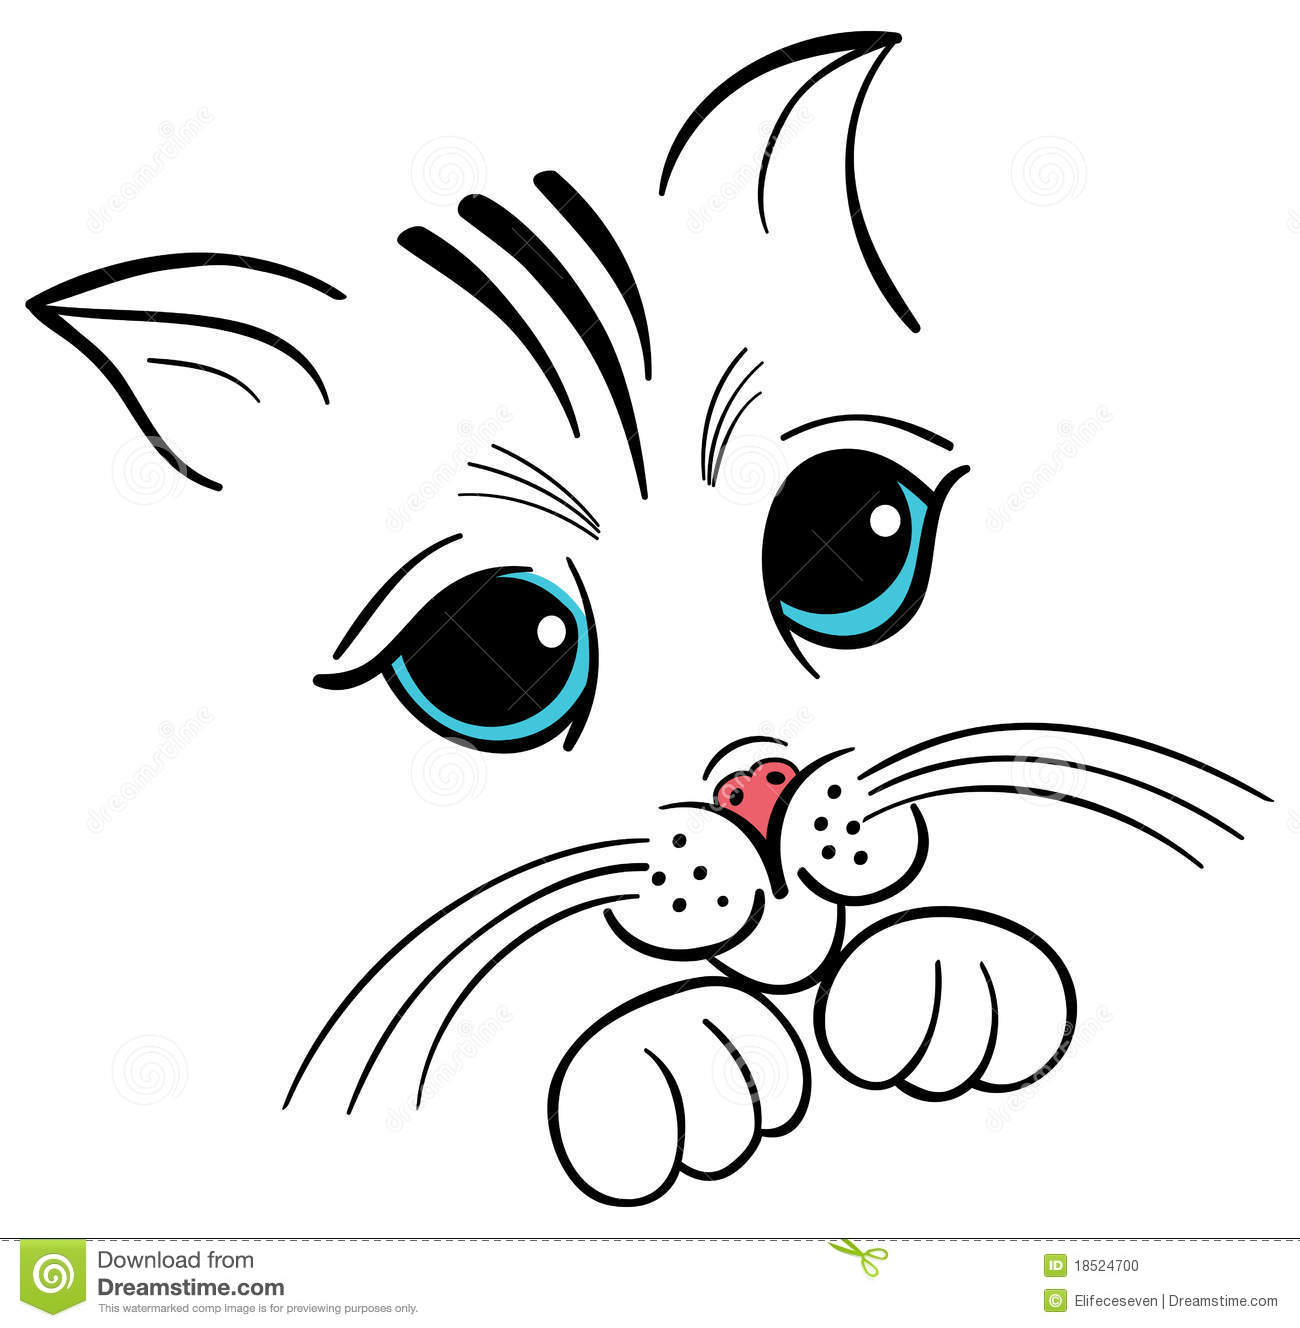 Hello Kitty Coloring Pages also Cherries Drawing furthermore World Map With Country Names Printable Best Of Free Printable Maps Europe And Map Black White Paydaymaxloans Free Art Print Of World Map With Country Name Illustration Of 535 additionally Cute Baby Elephant Clipart additionally Halloween Banner. on cute cartoon